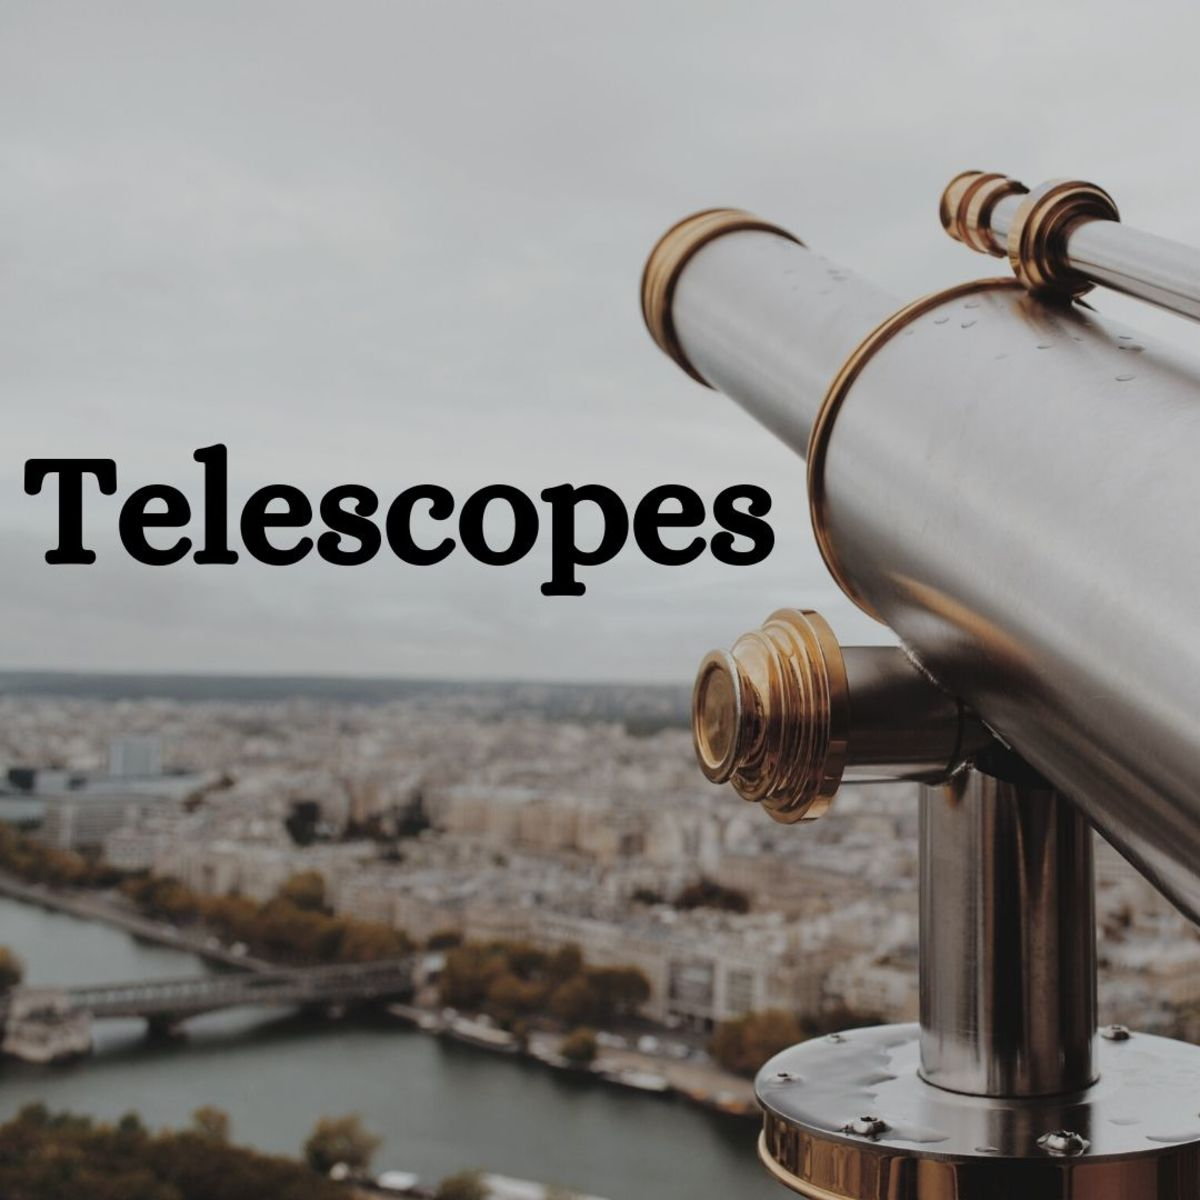 Collecting telescopes can be an expensive hobby, but if you've got the cash, why not collect them?